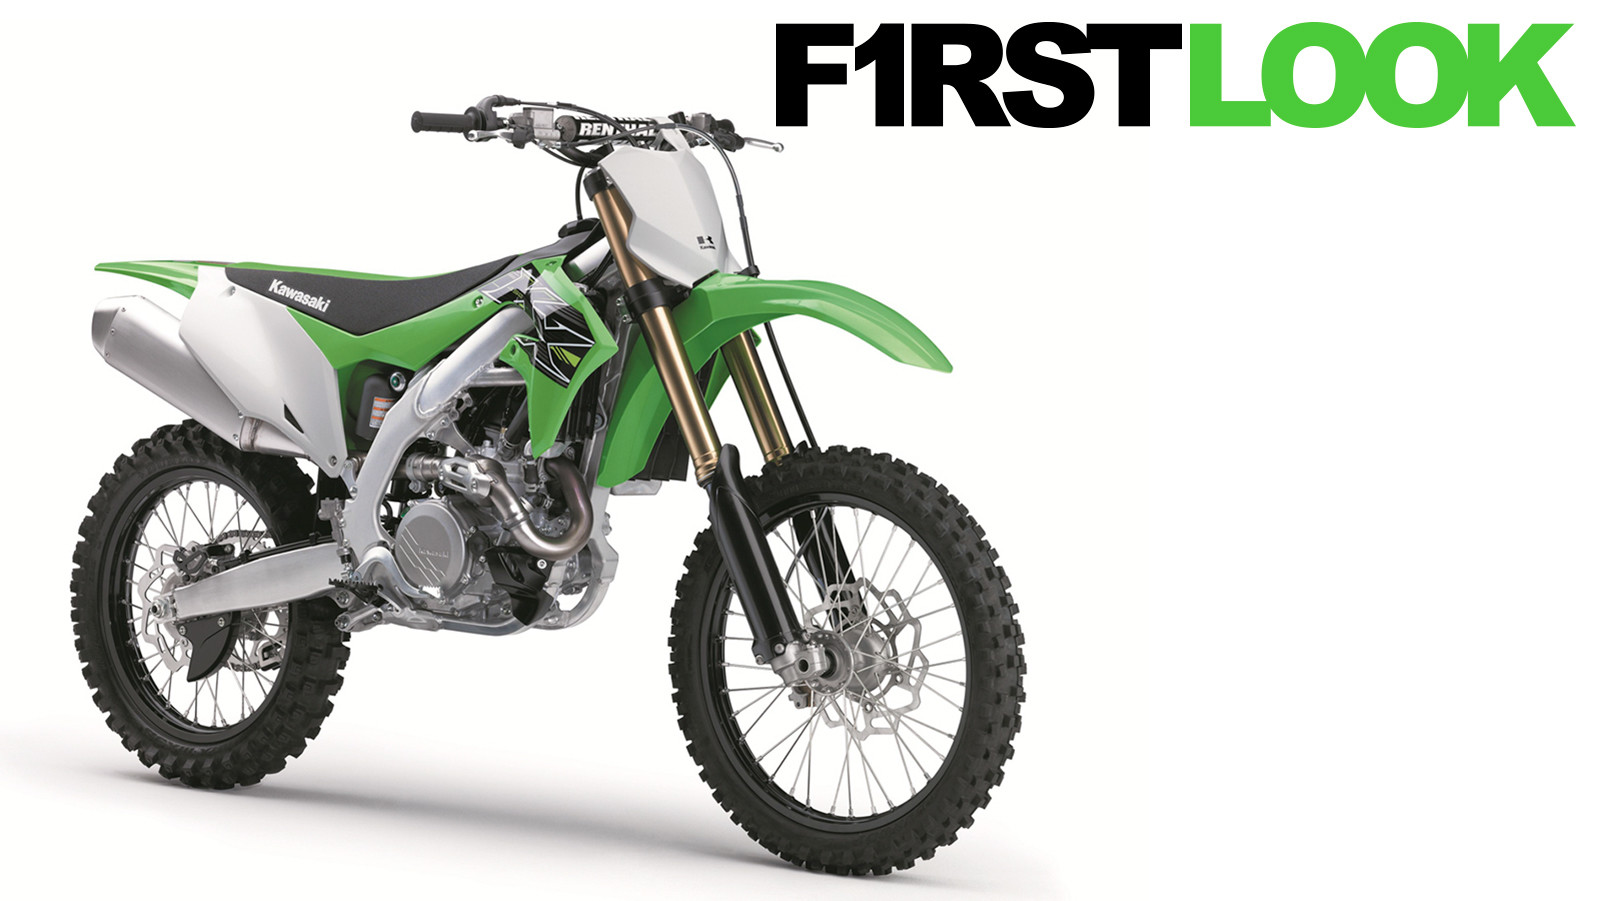 First Look: 2019 Kawasaki KX450F